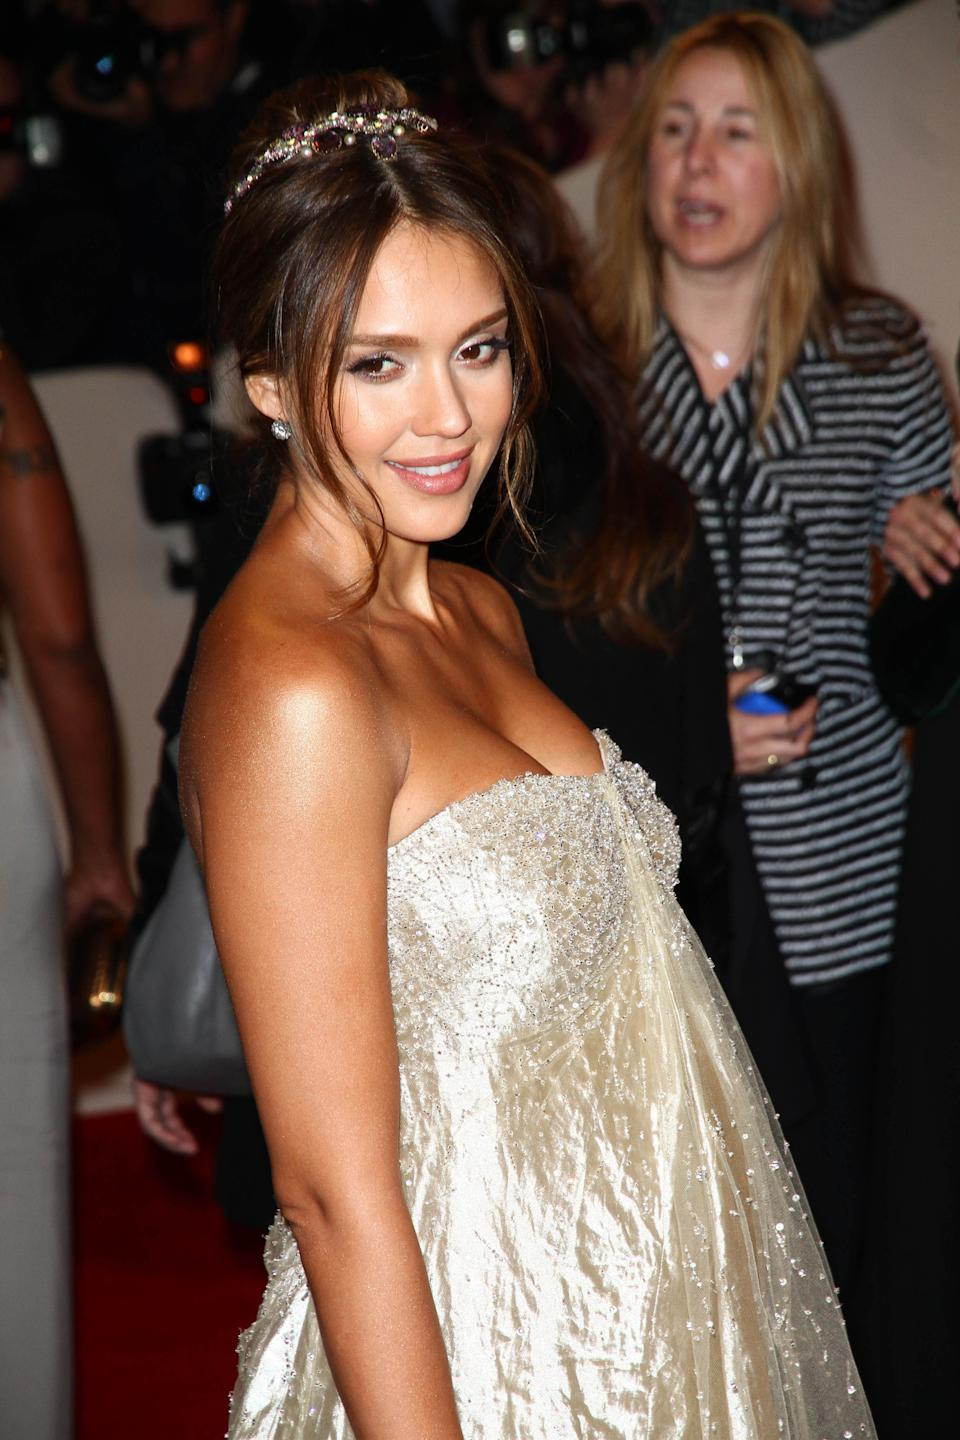 Photo by: Jackson Lee/starmaxinc.com ©2011 ALL RIGHTS RESERVED Telephone/Fax: (212) 995-1196 5/2/11 Jessica Alba at the Costume Institute Gala. (NYC) (Star Max via AP Images)